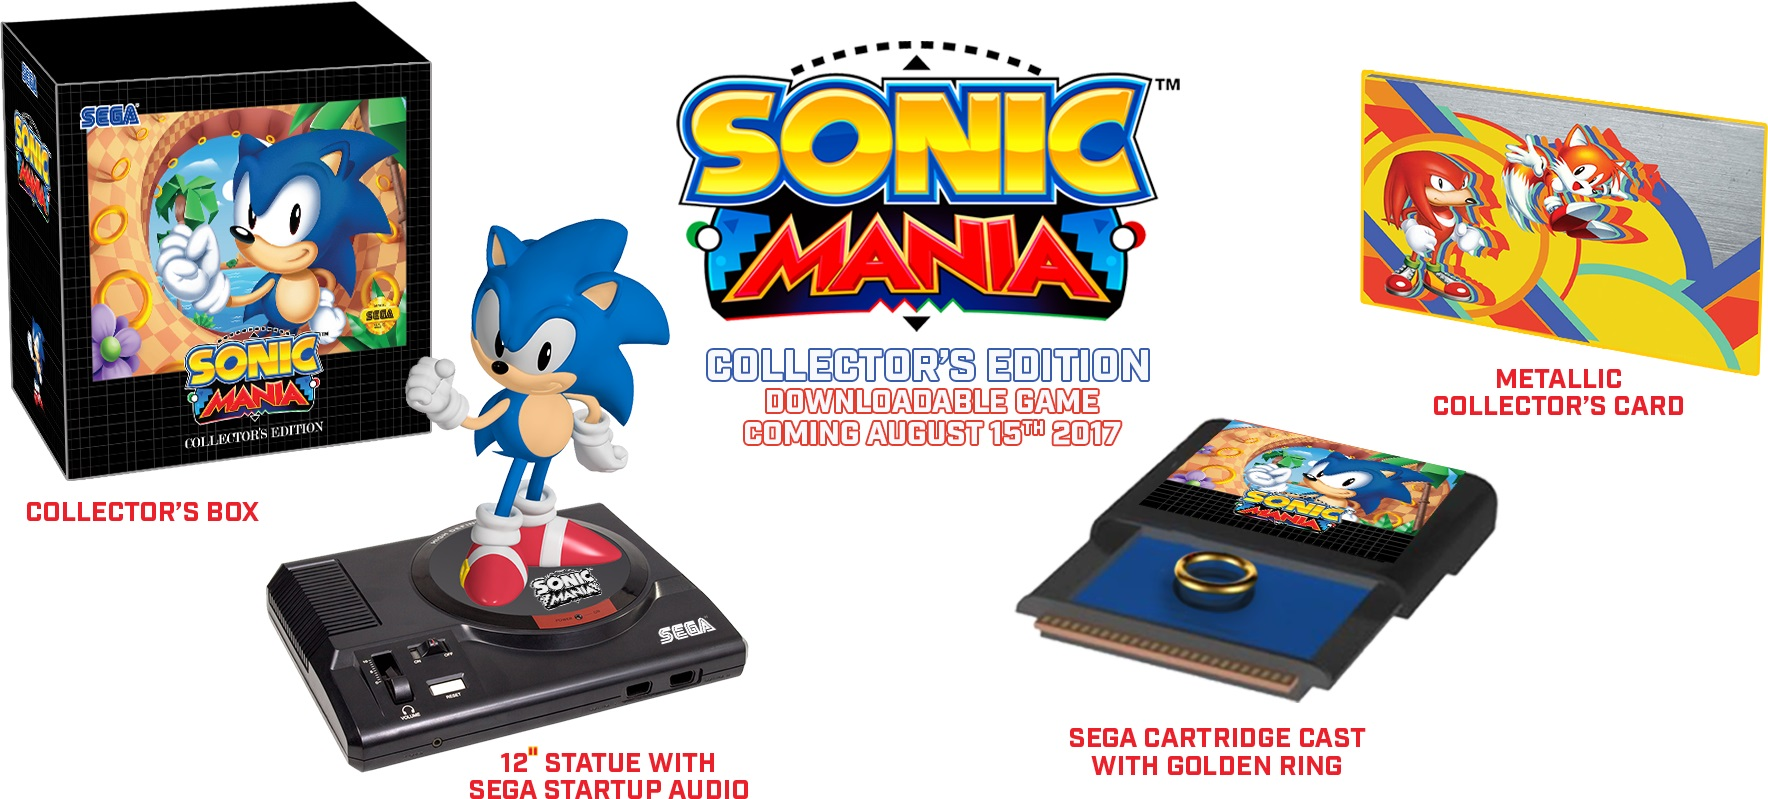 Co-Optimus - Video - Sonic Mania is Priced and Dated